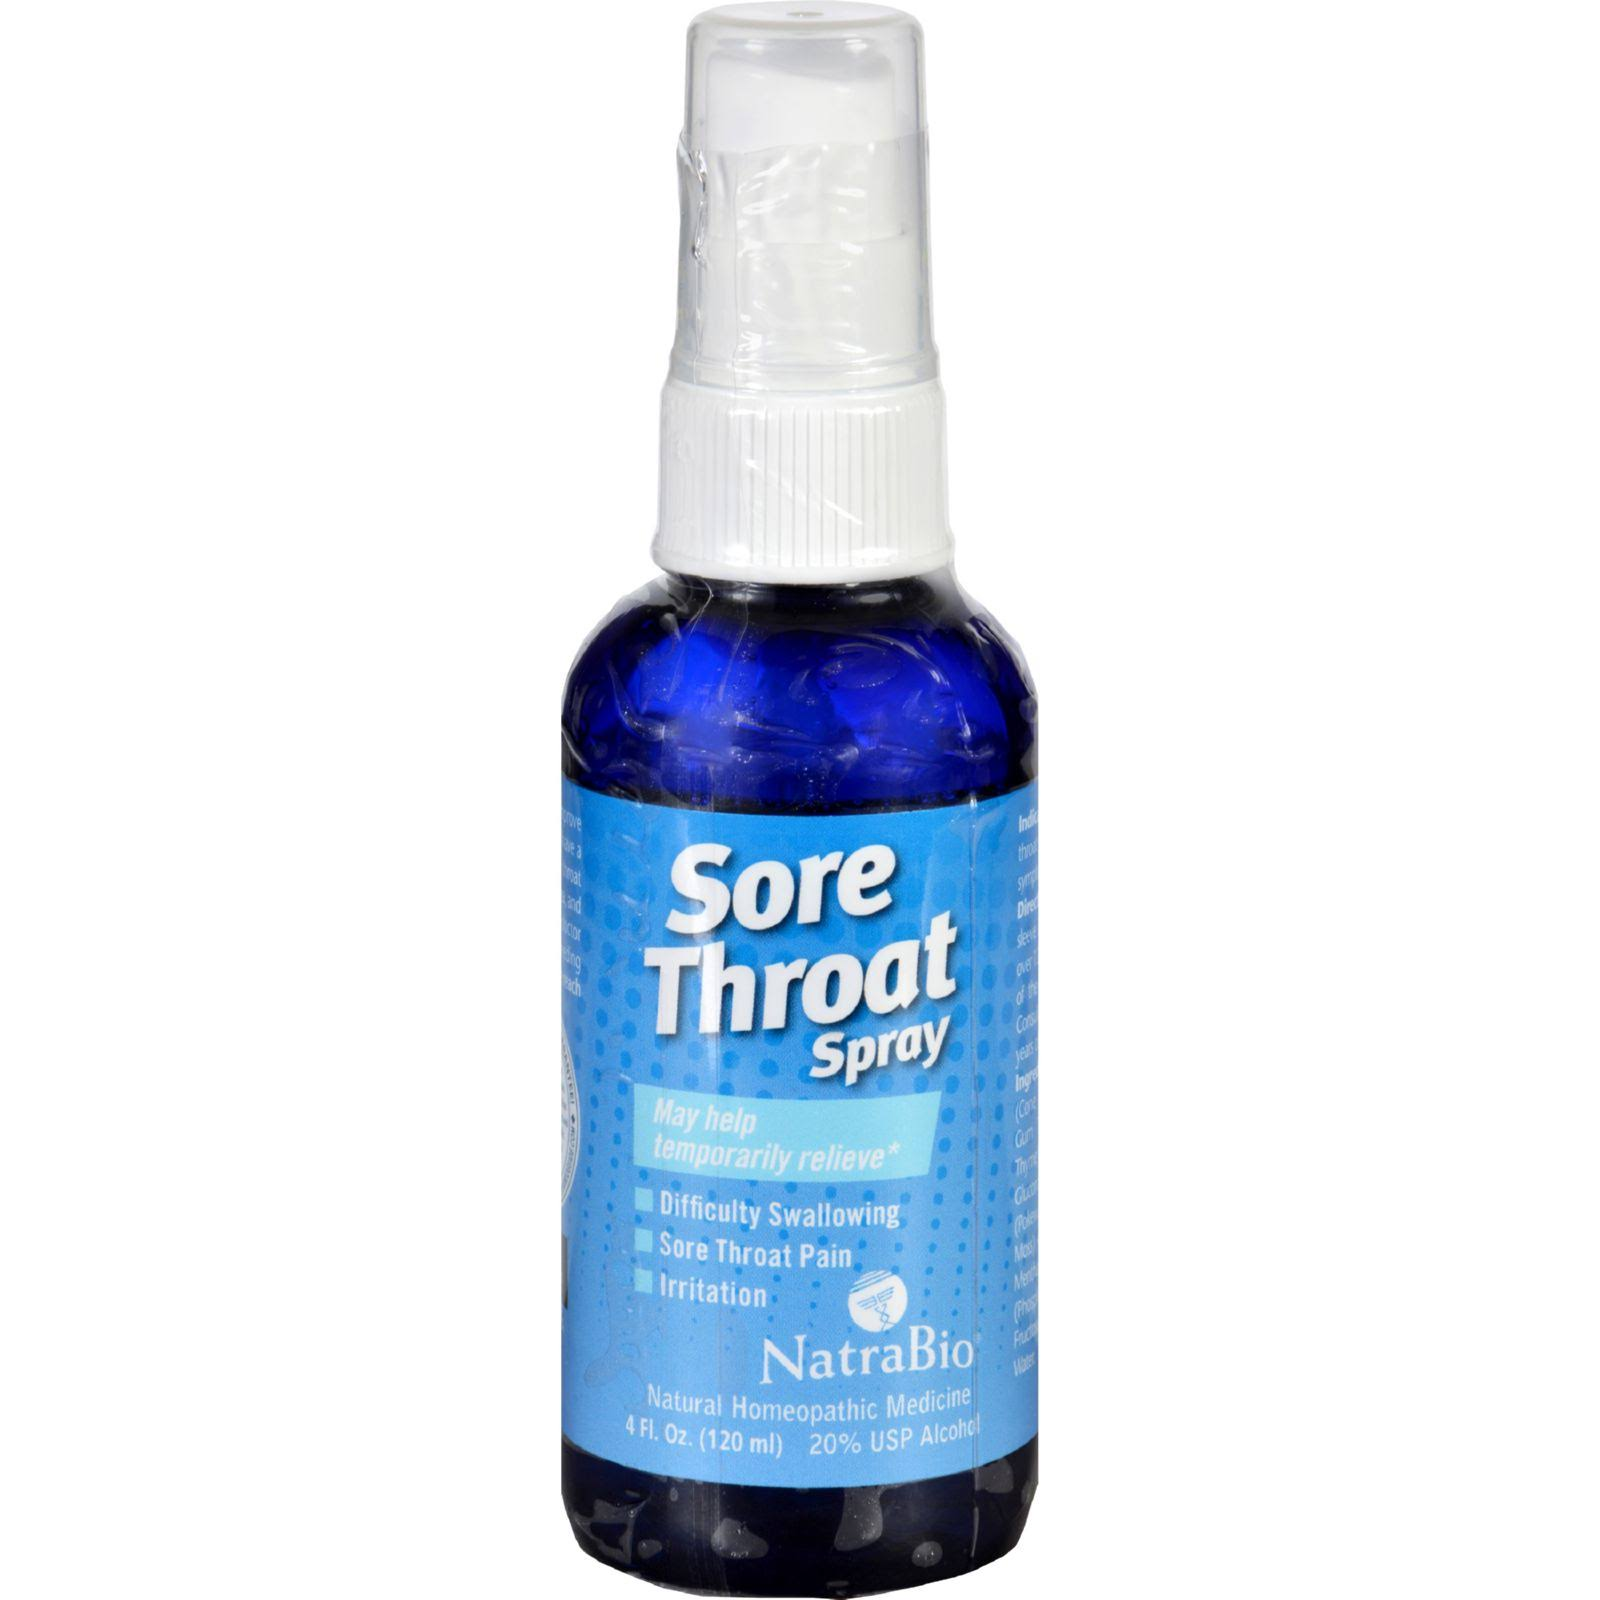 Natrabio Sore Throat Pain Relief Spray - 4oz